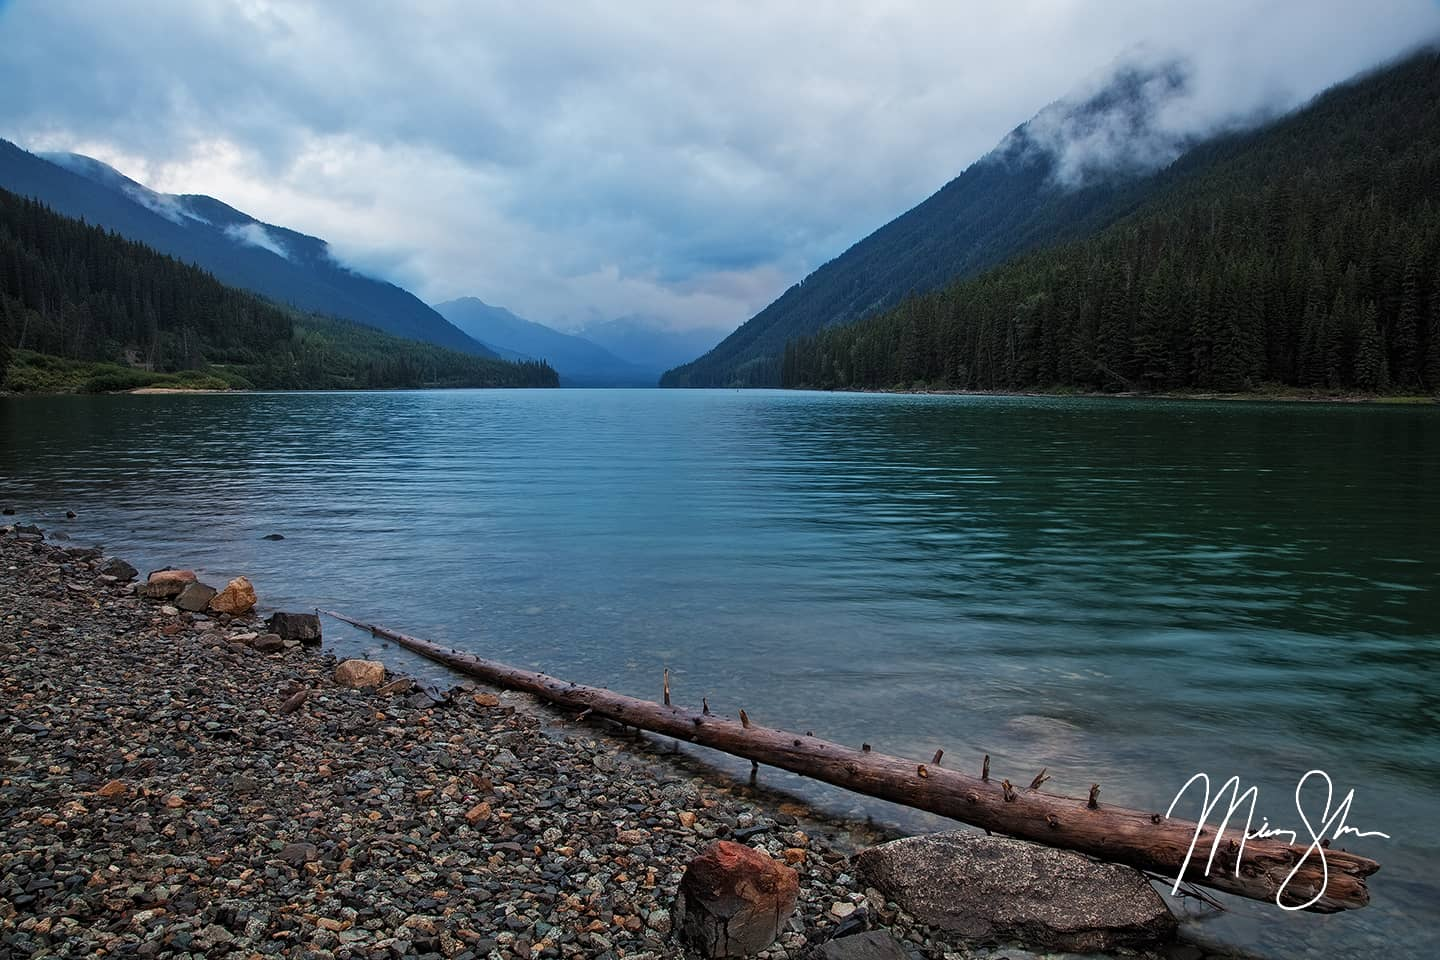 Duffey Lake Shoreline - Duffey Lake, British Columbia, Canada